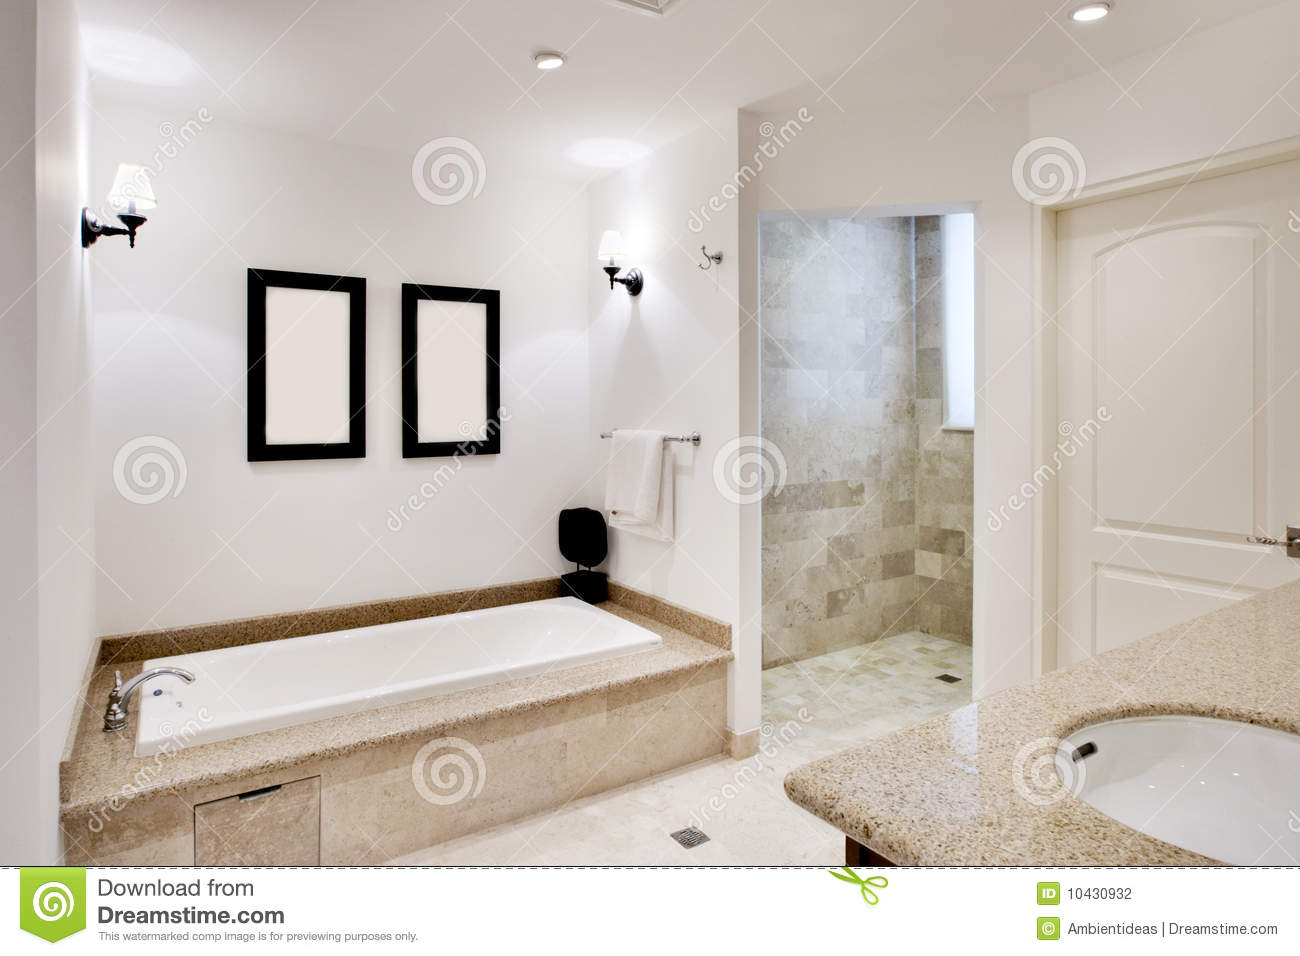 badezimmer mit wanne und dusche stockfotografie bild. Black Bedroom Furniture Sets. Home Design Ideas